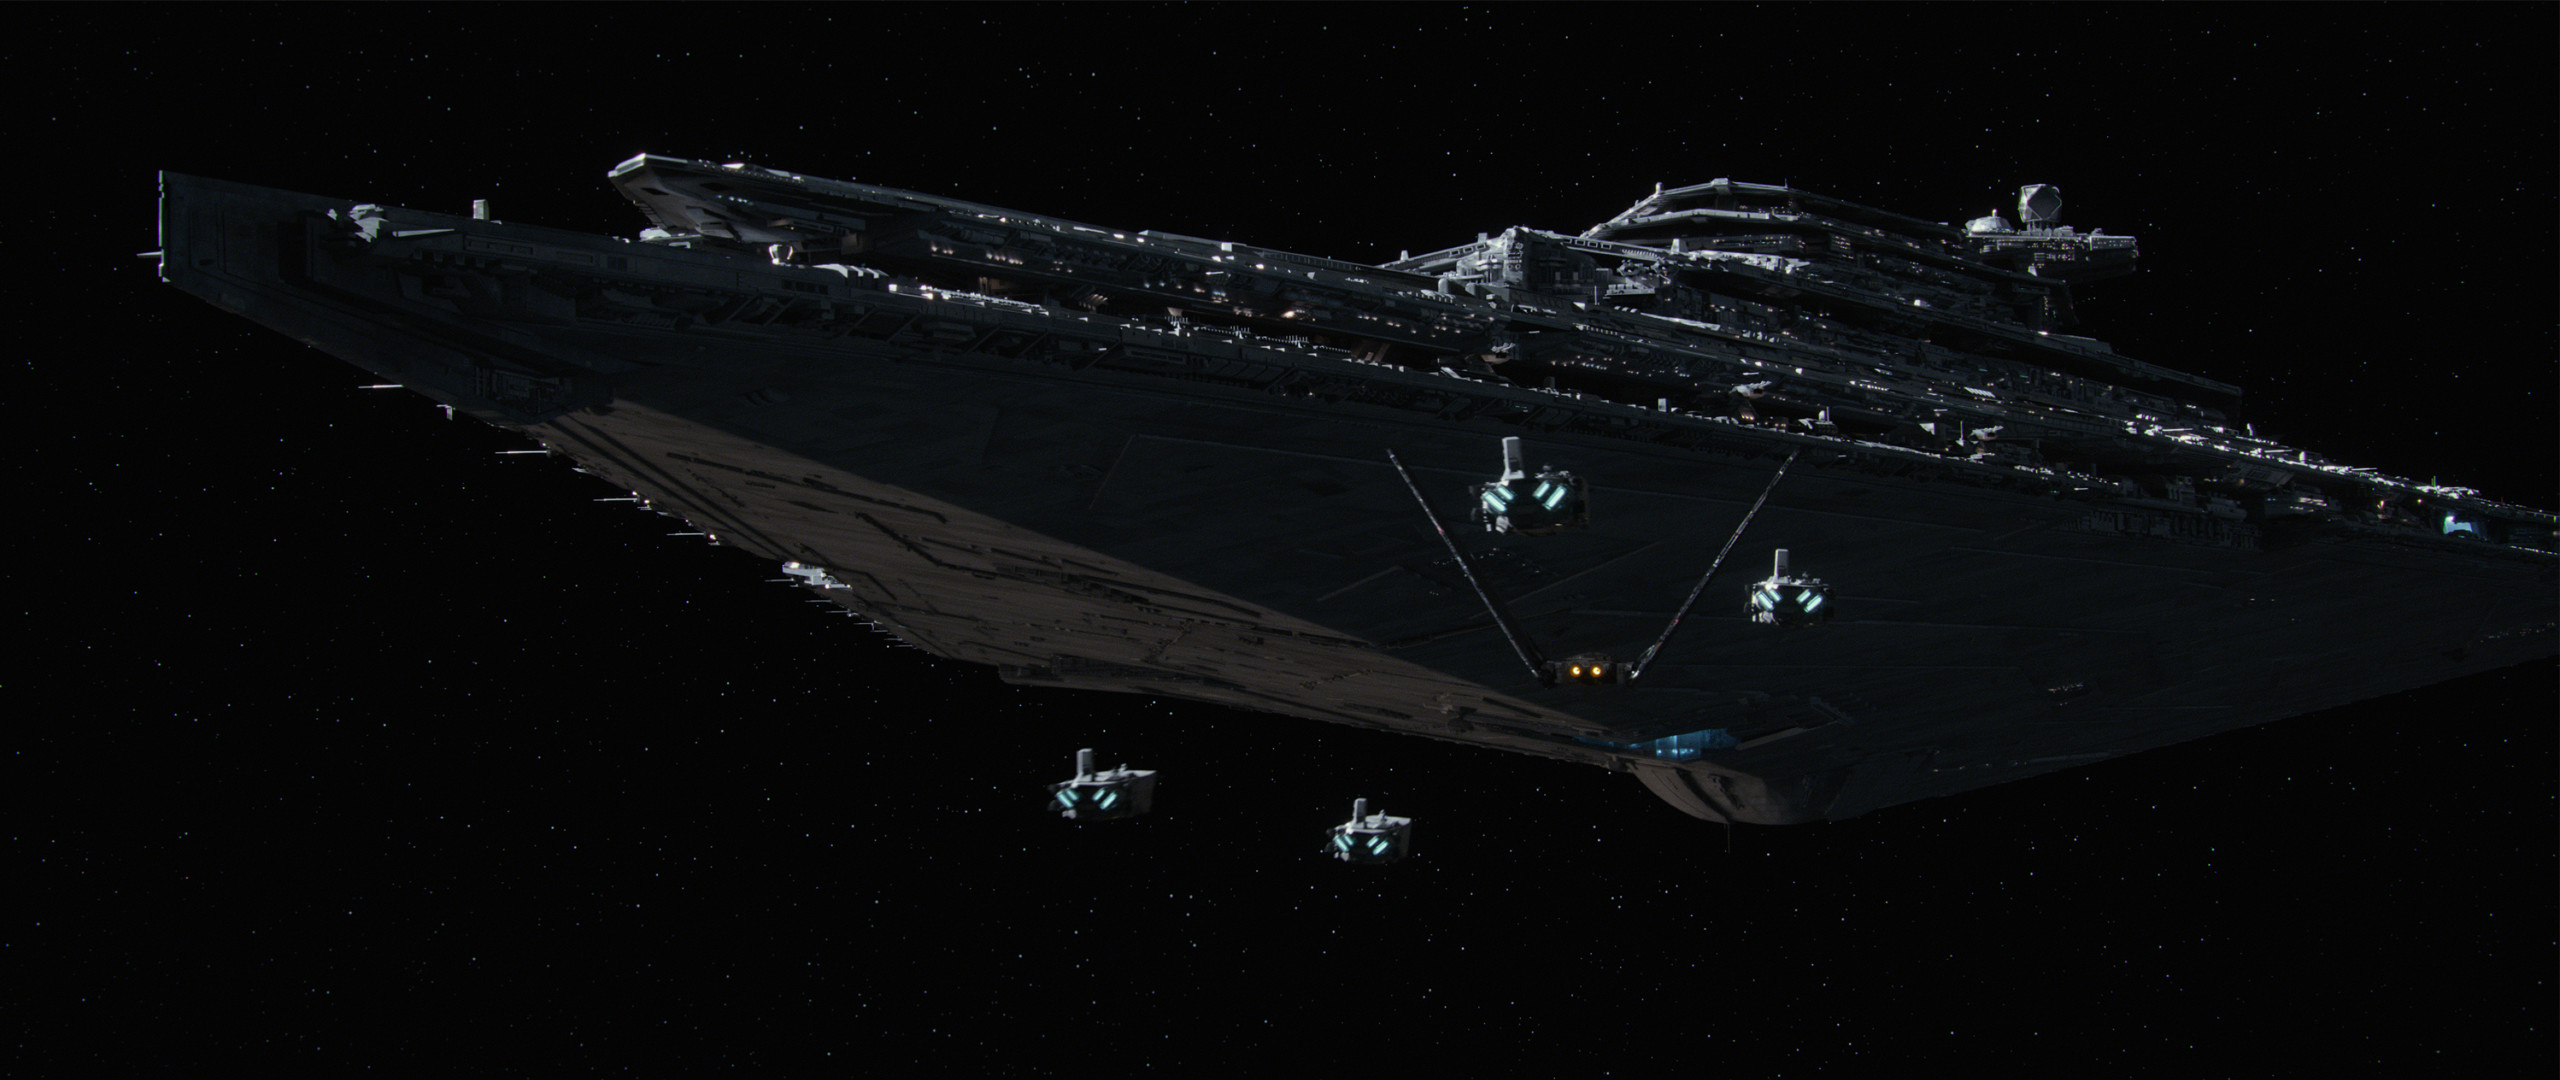 2560x1080 Star Wars, Star Destroyer, Science Fiction, Star Wars: Episode VII The Force